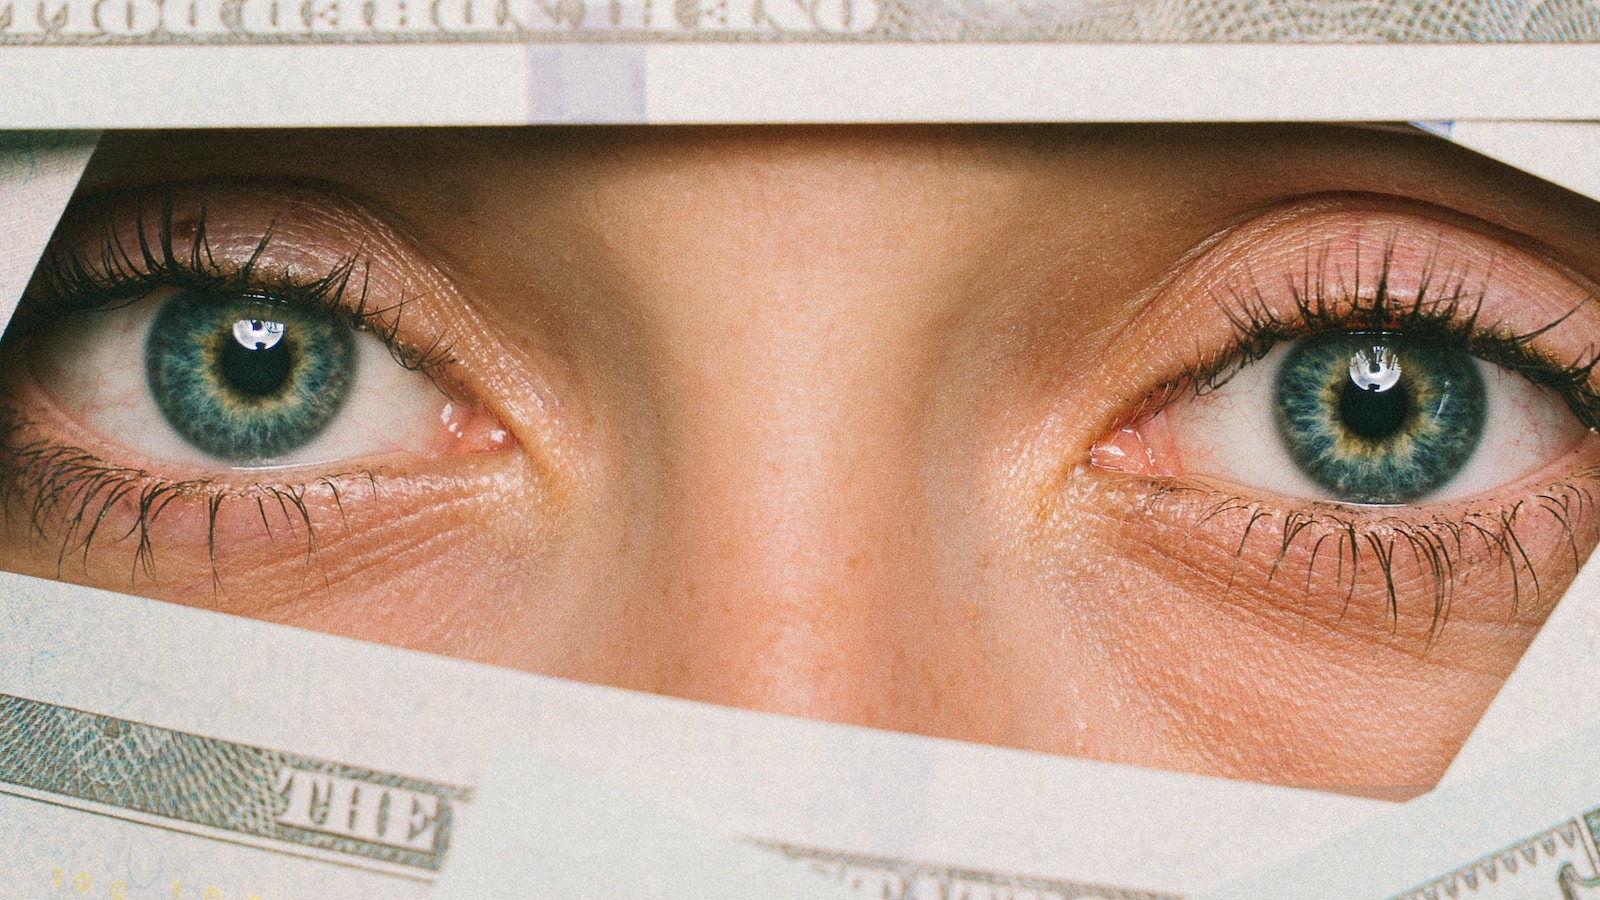 Woman eyes peeking through hundred dollar bills